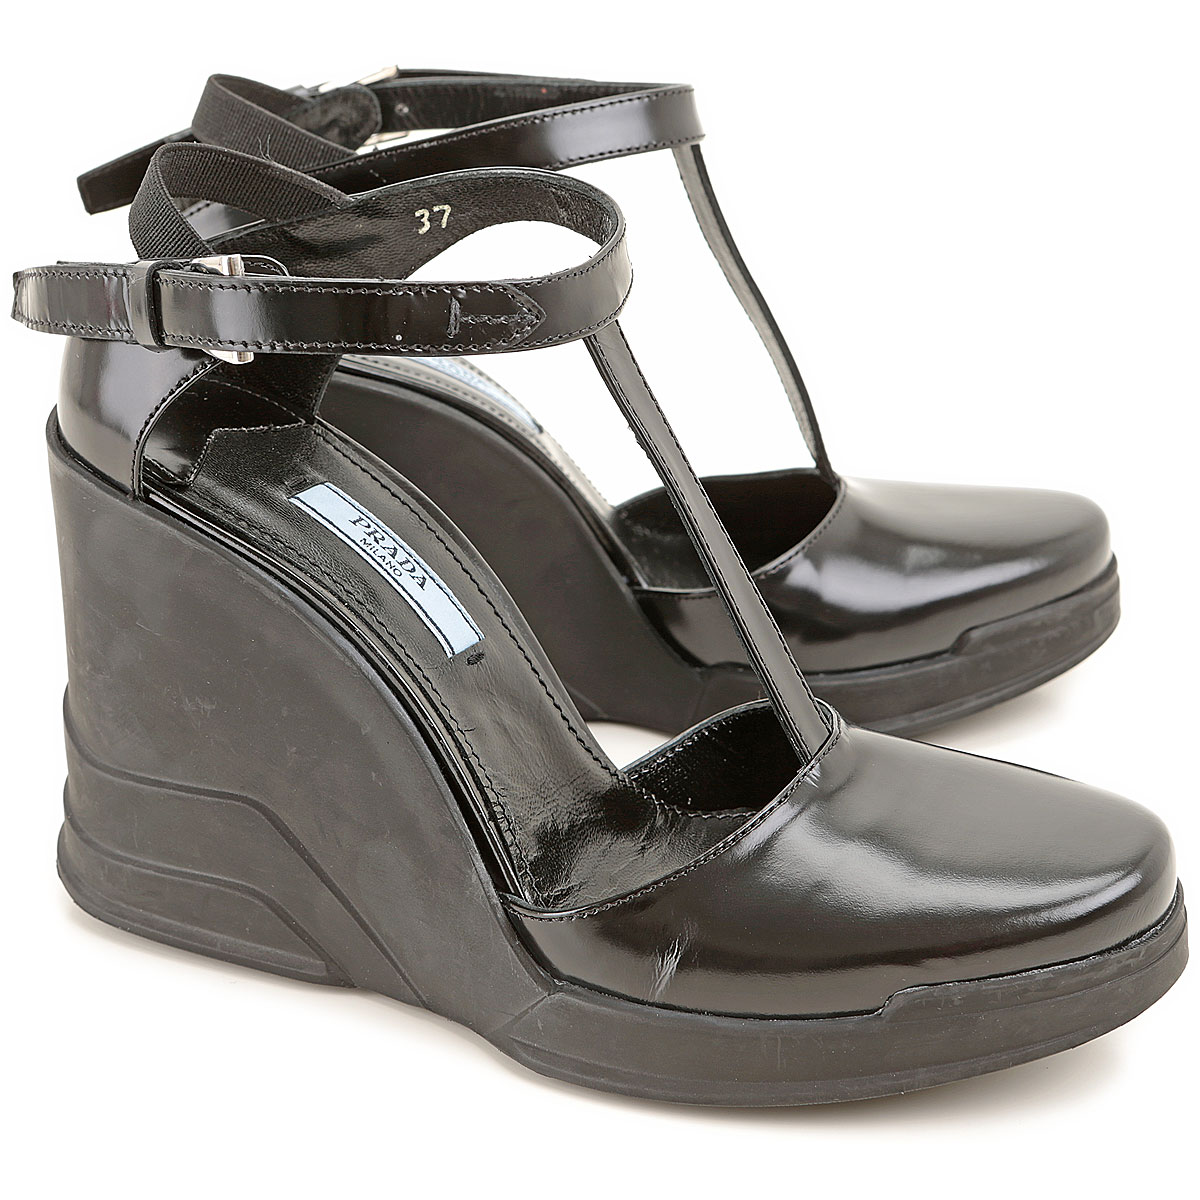 Prada Wedges for Women in Outlet Black USA - GOOFASH